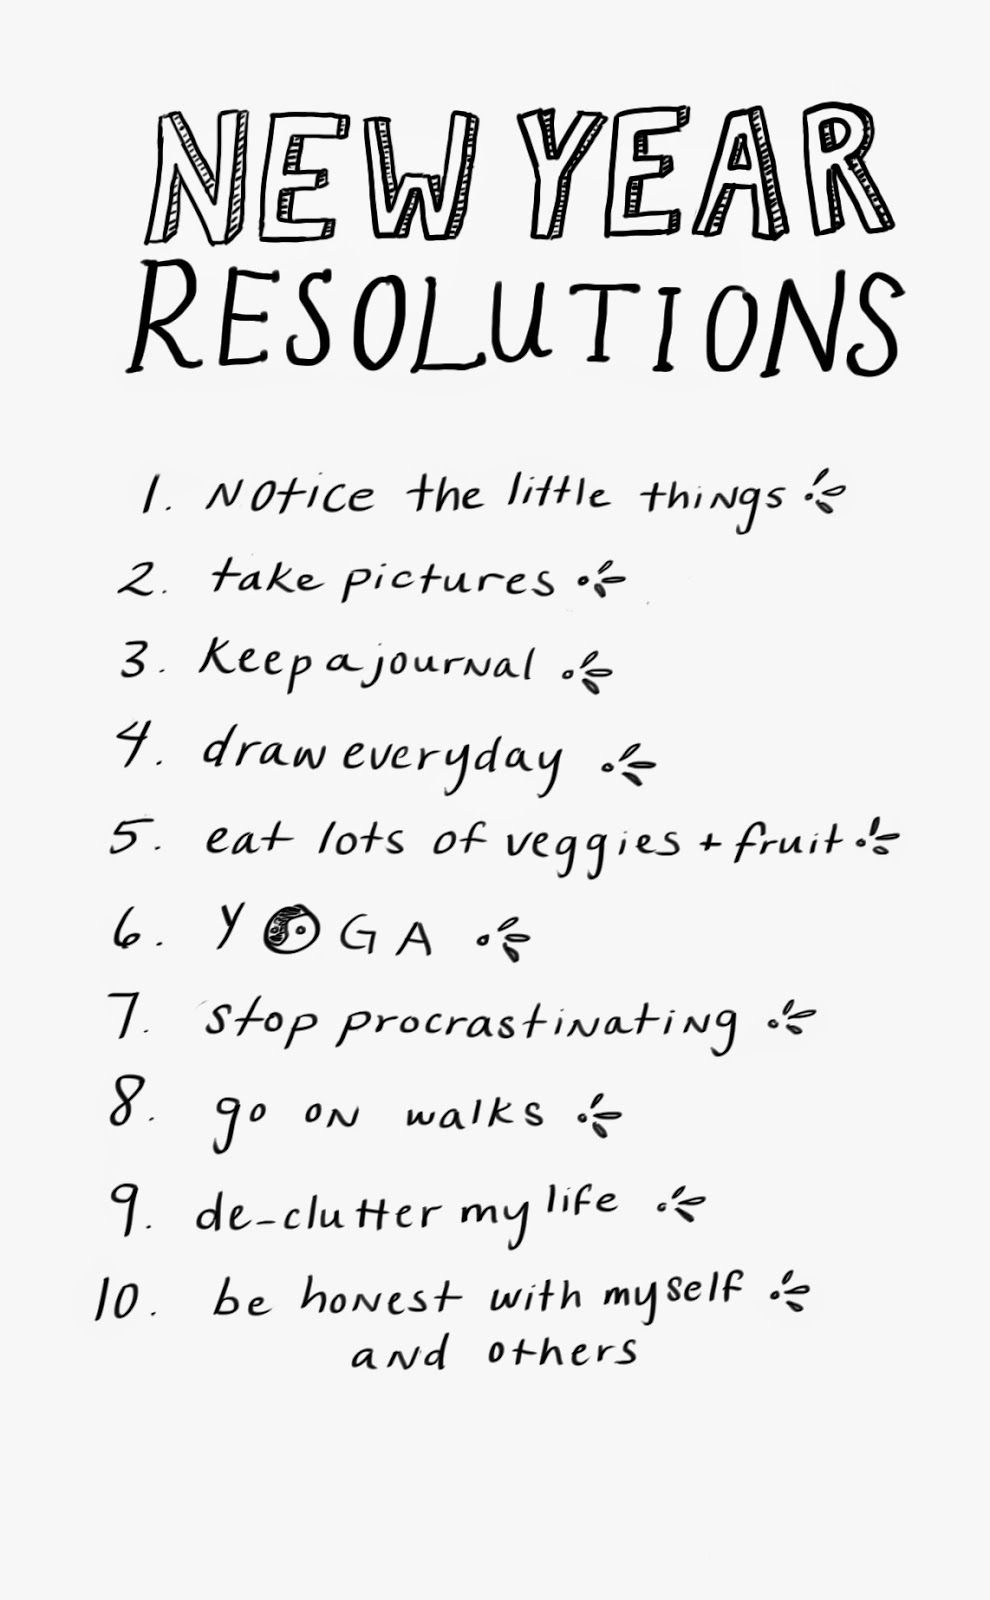 these are actually pretty good resolutions | Inspiration | Pinterest ...